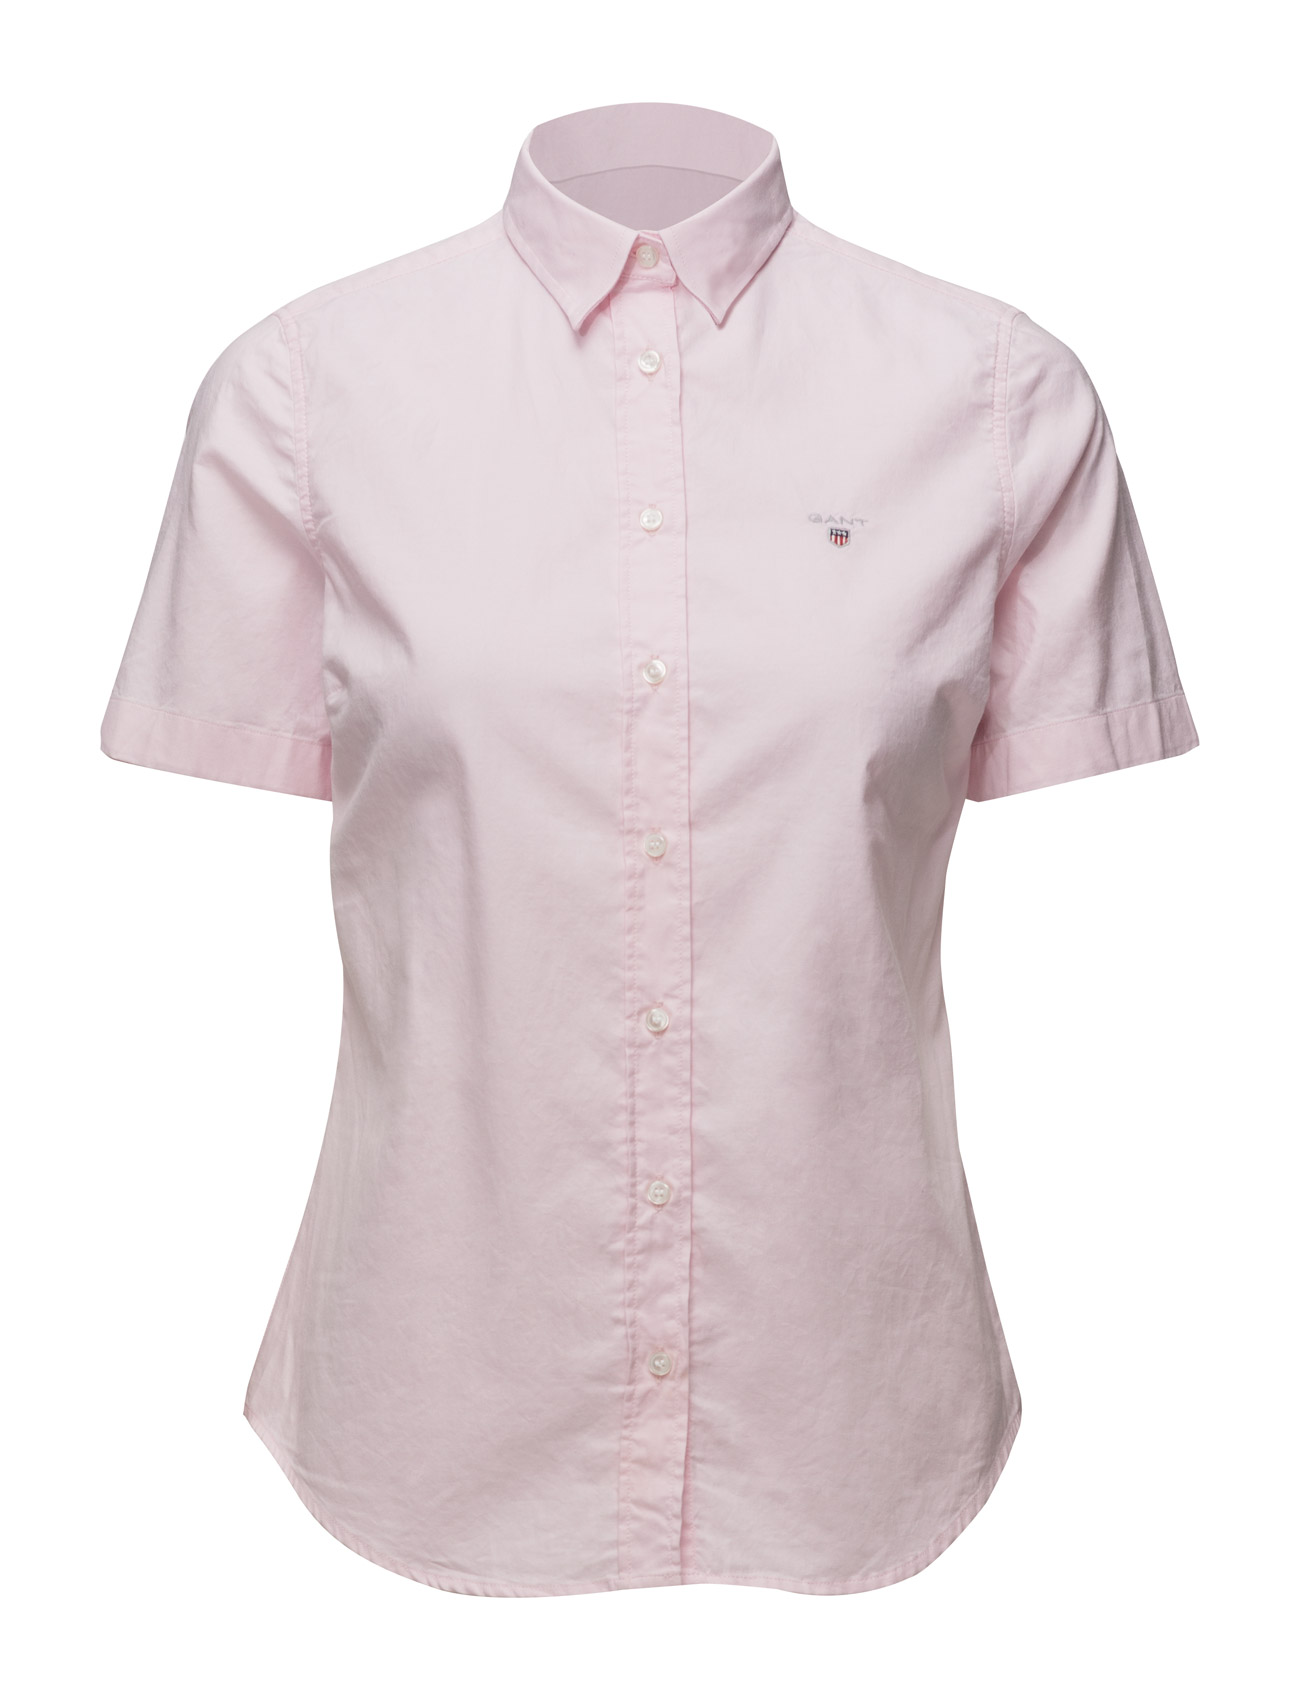 Image of Stretch Oxford Solid Ss Shirt (3117282673)